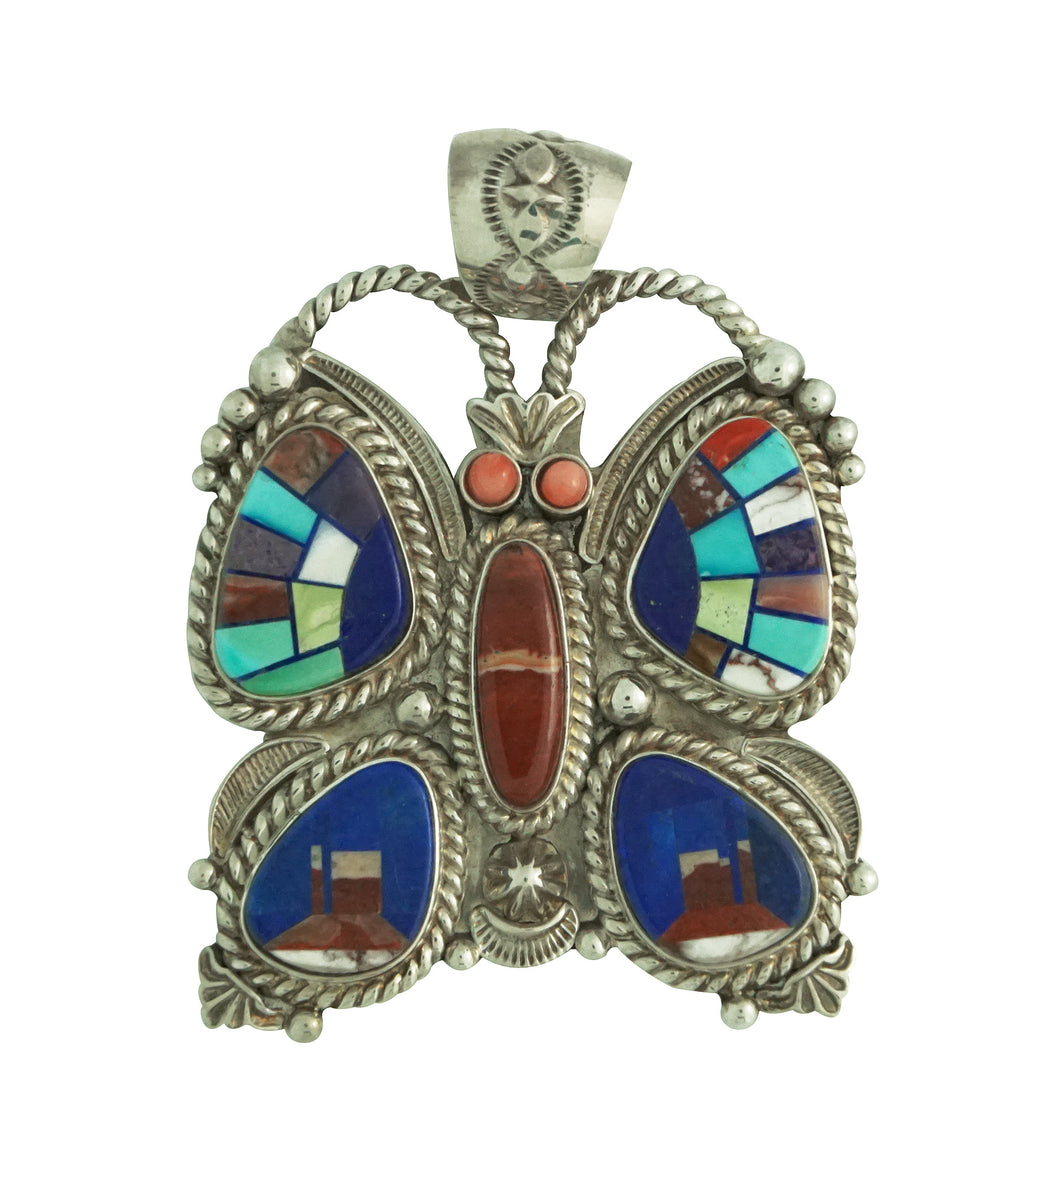 Randy Boyd, Calvin Desson, Pendant, Butterfly, Monument Valley, Navajo, 2 1/2